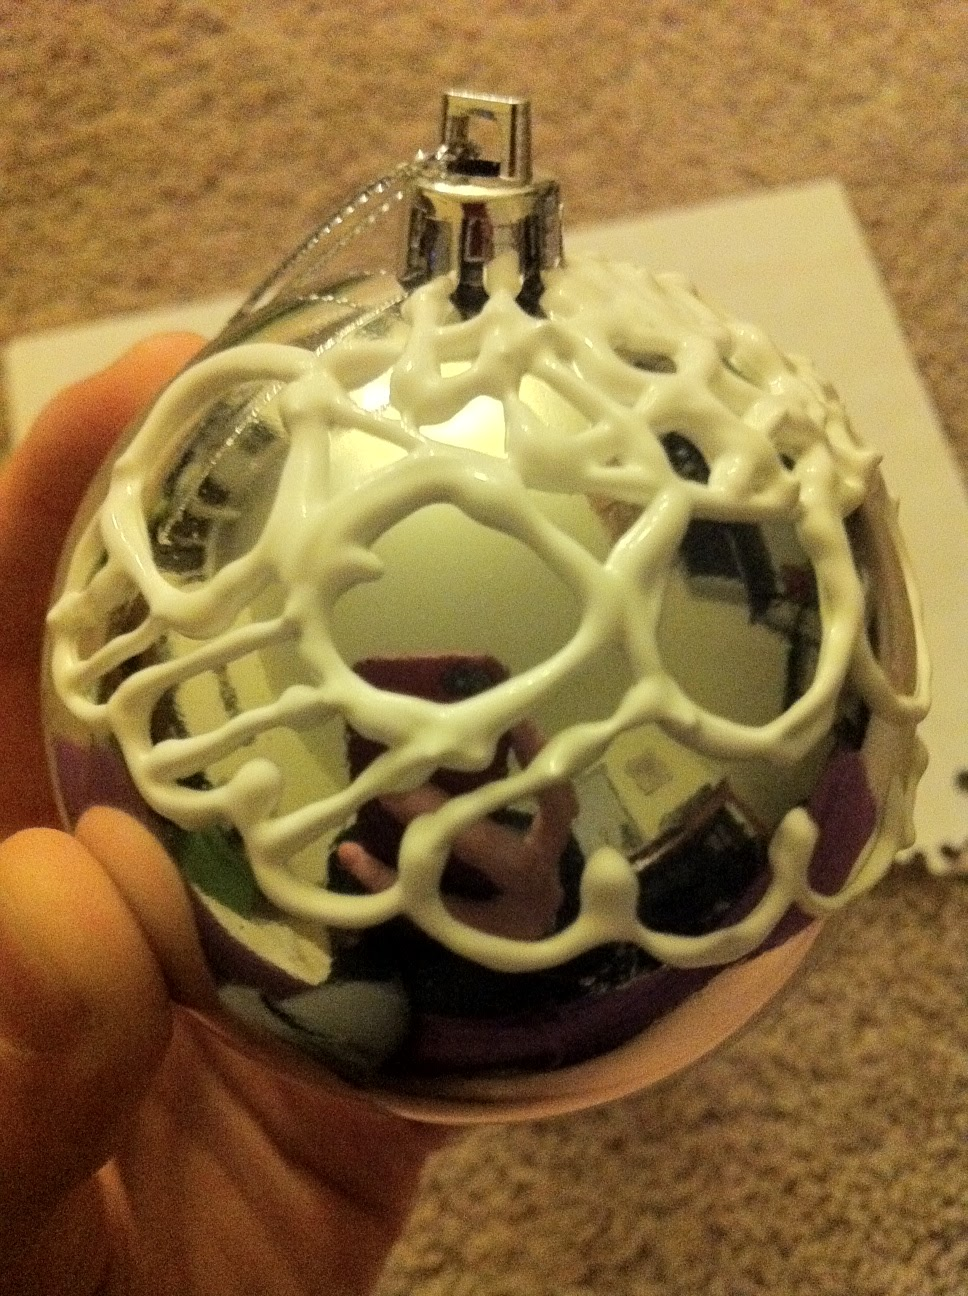 Life and other shenanigans puffy paint ornaments round 2 - Decoracion navidad 2014 ...